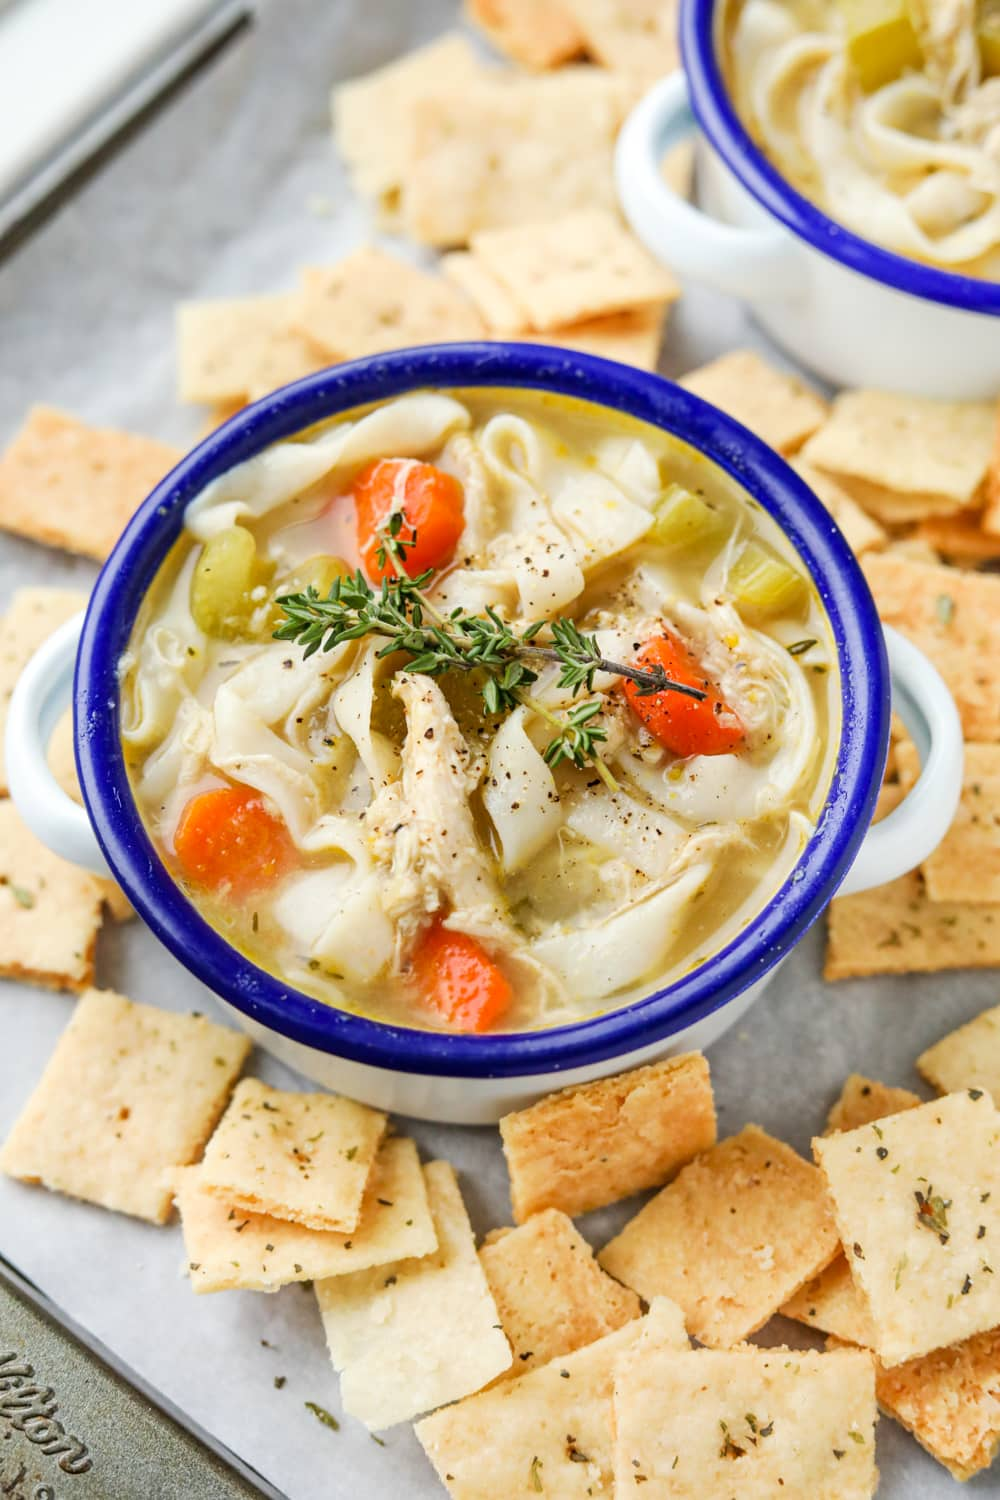 A bowl of chicken noodle soup set on a baking tray. There are crackers surrounding the soup.